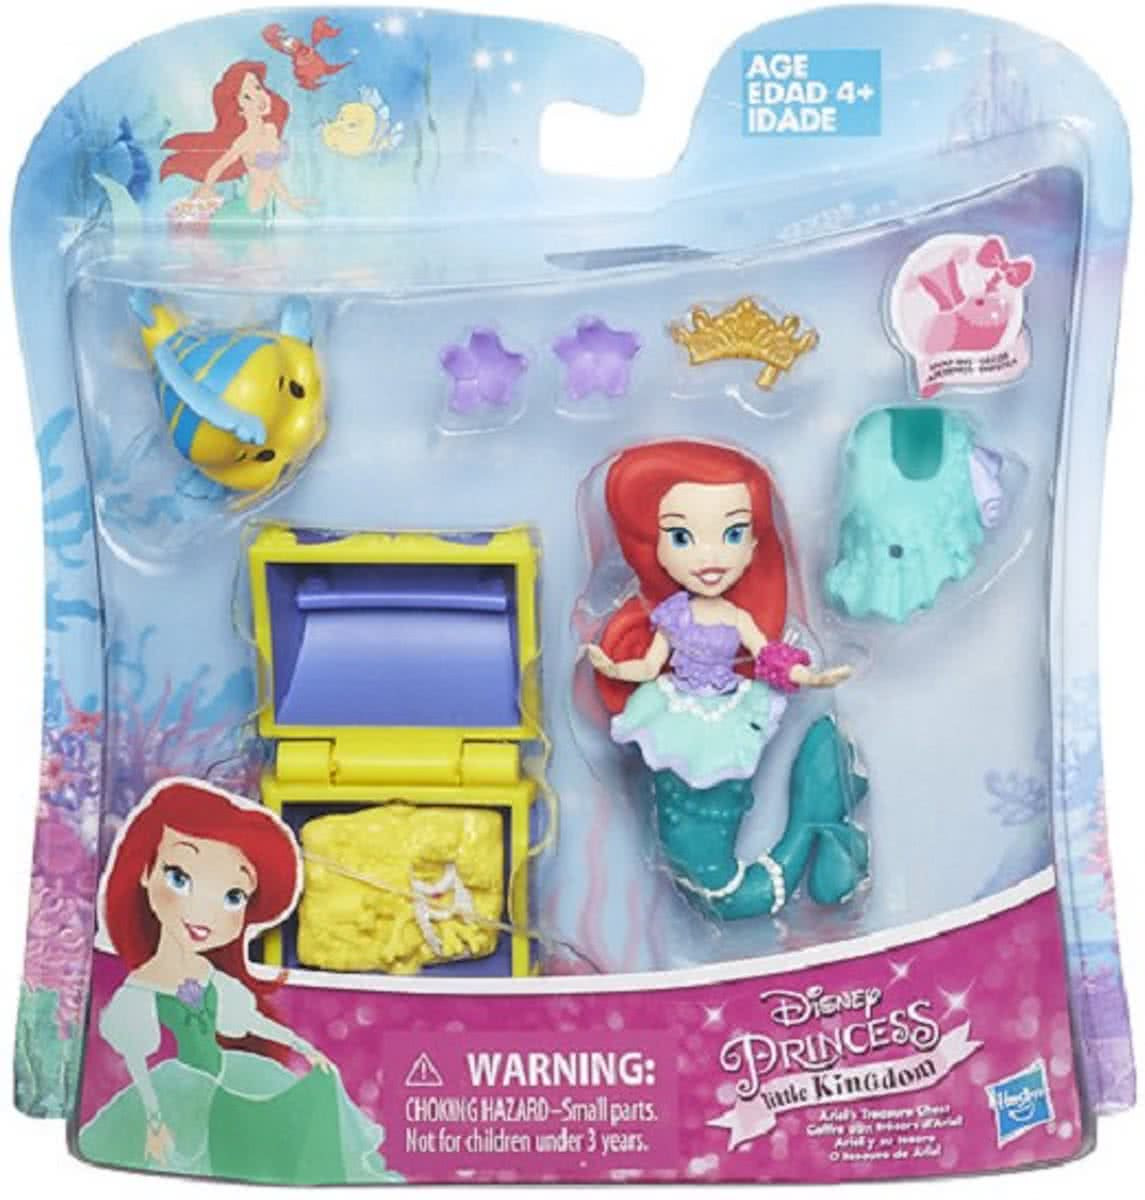 Speelset Disney Princess Mini & Accessoire Assorti